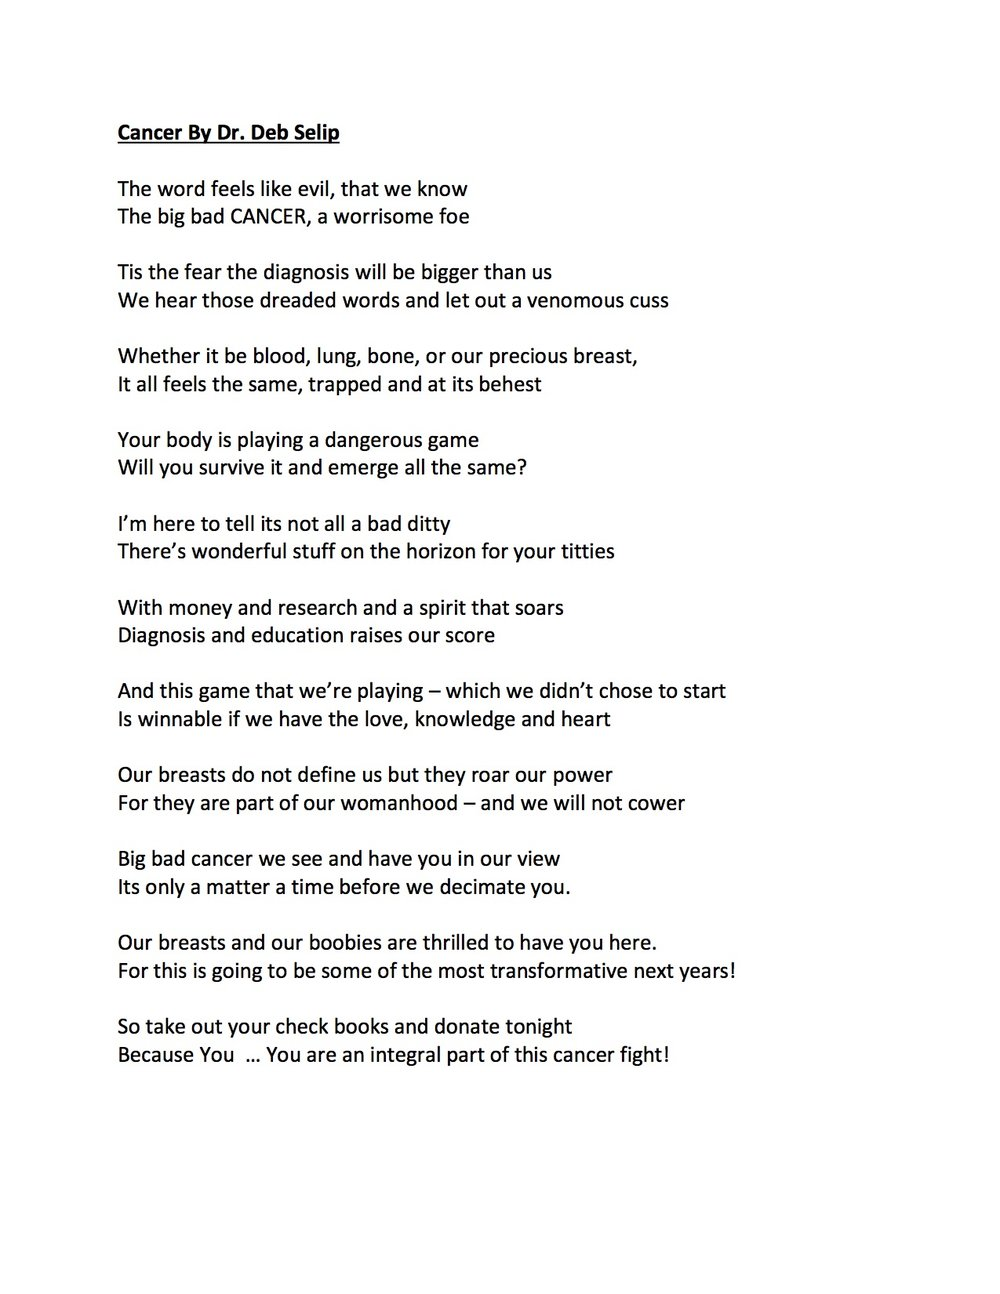 Dr. Deb Selip..... Poetry - Cancer